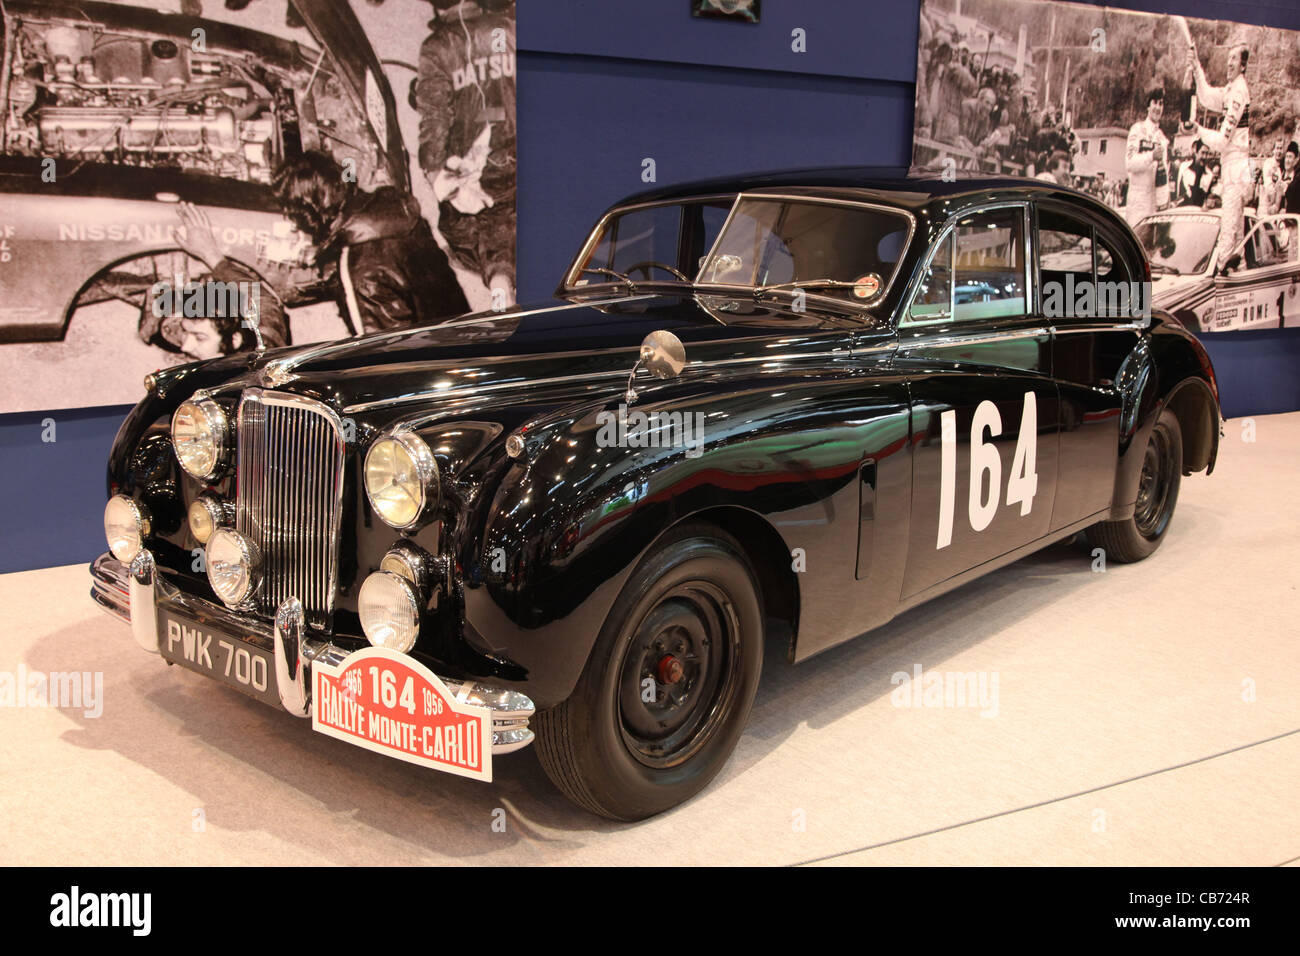 Jaguar Mk VII - Winner Car of the Rally Monte Carlo 1956, shown at the Essen Motor Show in Essen, Germany, on November - Stock Image